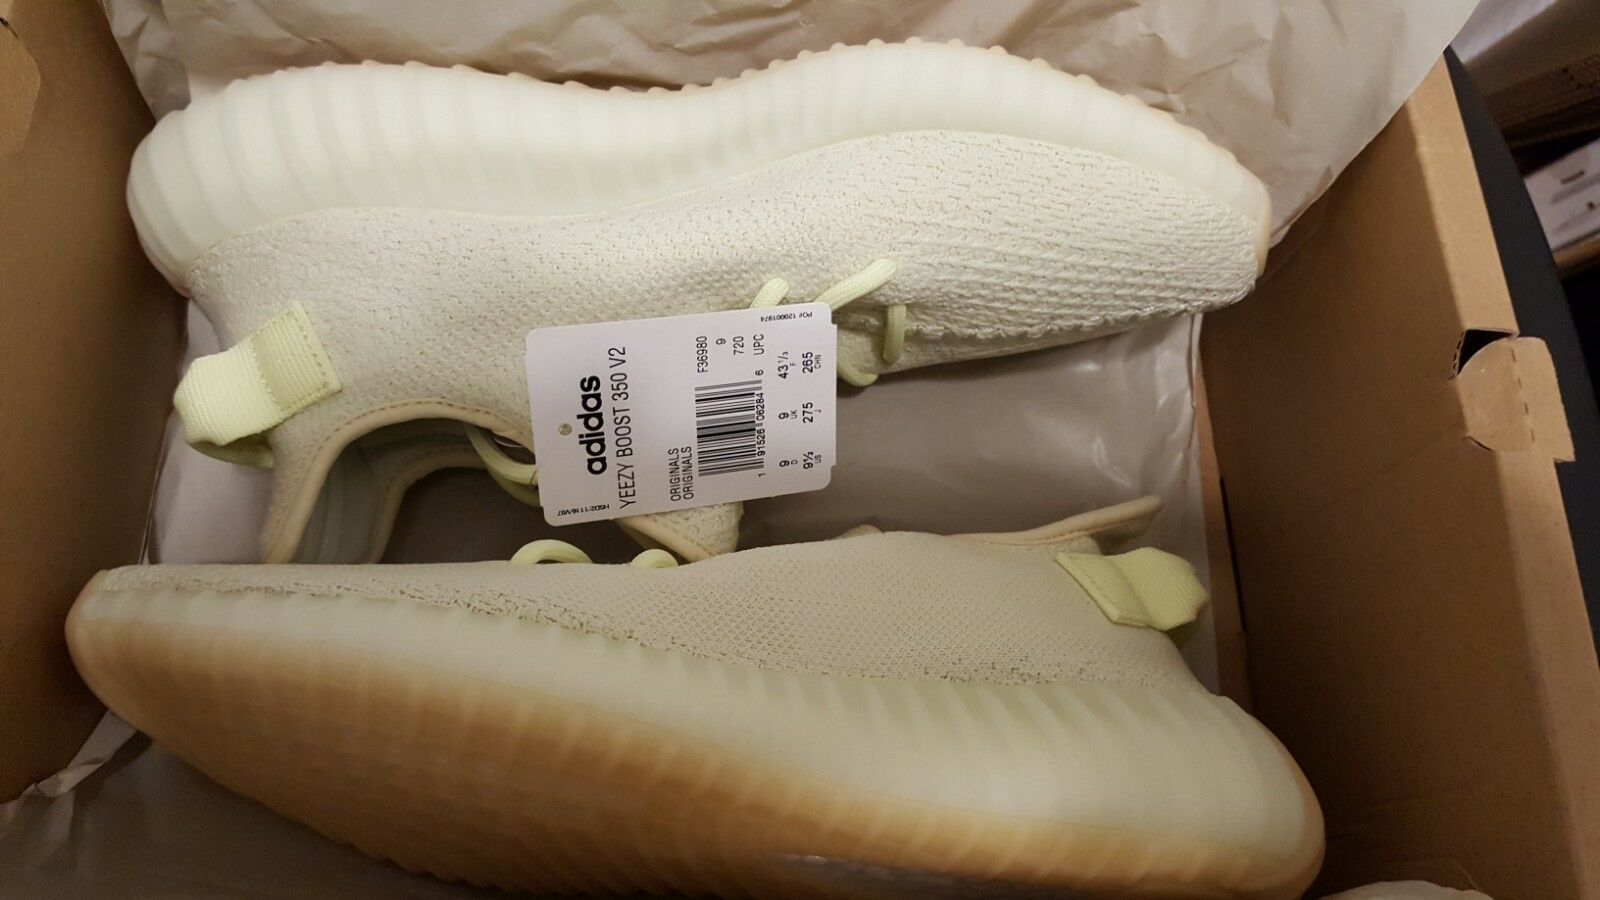 DS Adidas Yeezy Boost 350 v2 F36980 Butter Size 9.5  BRAND NEW